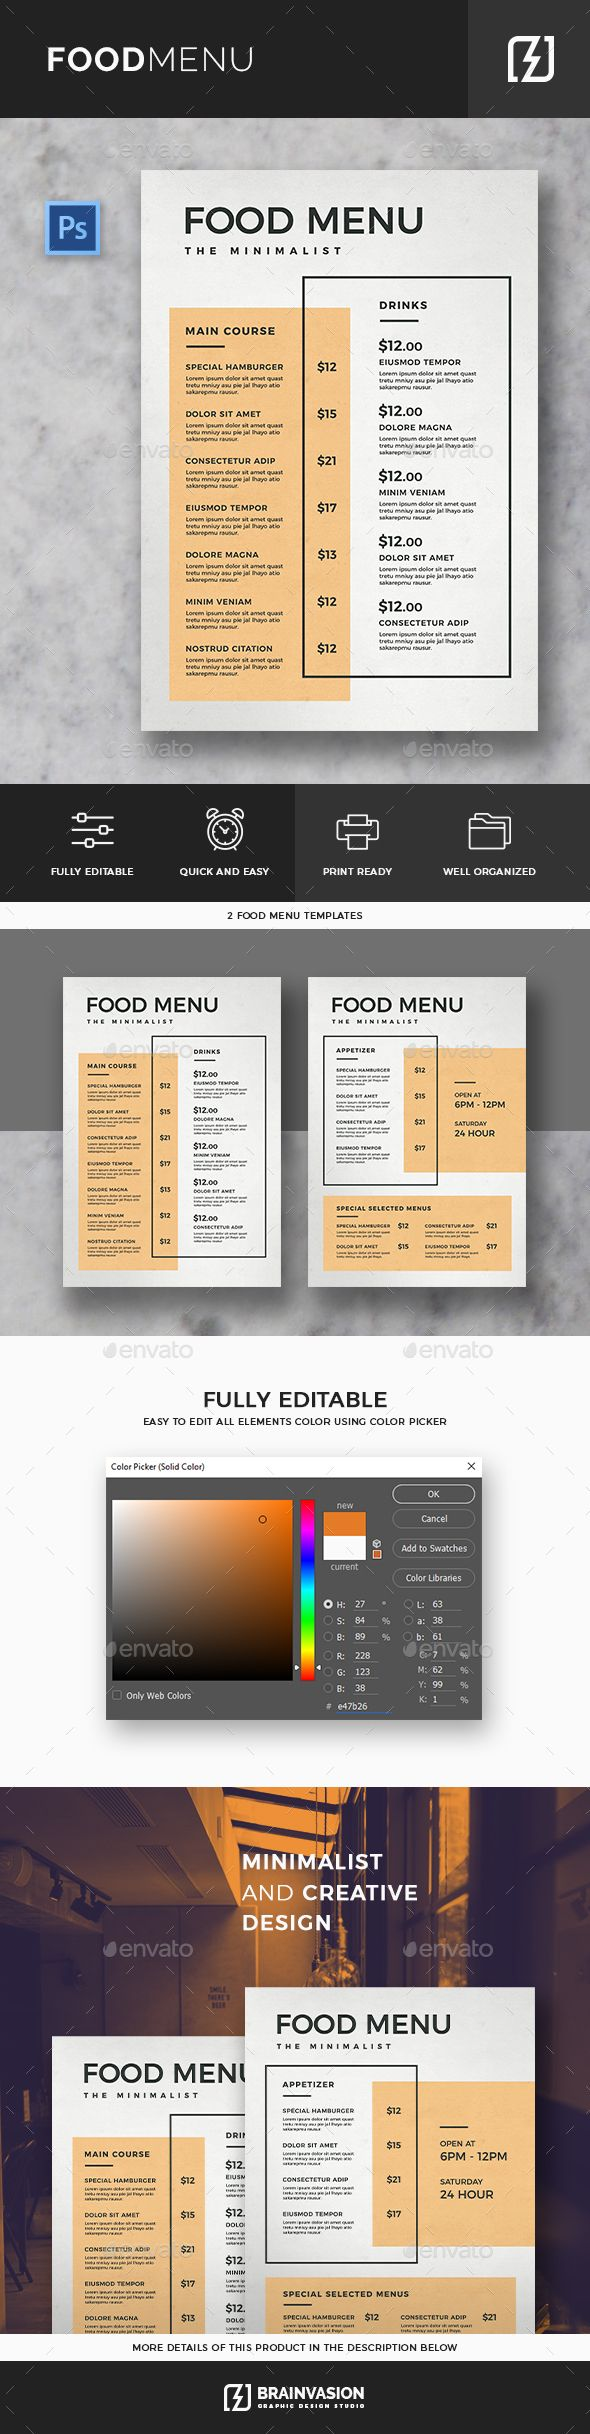 Minimal Food Menu Template PSD